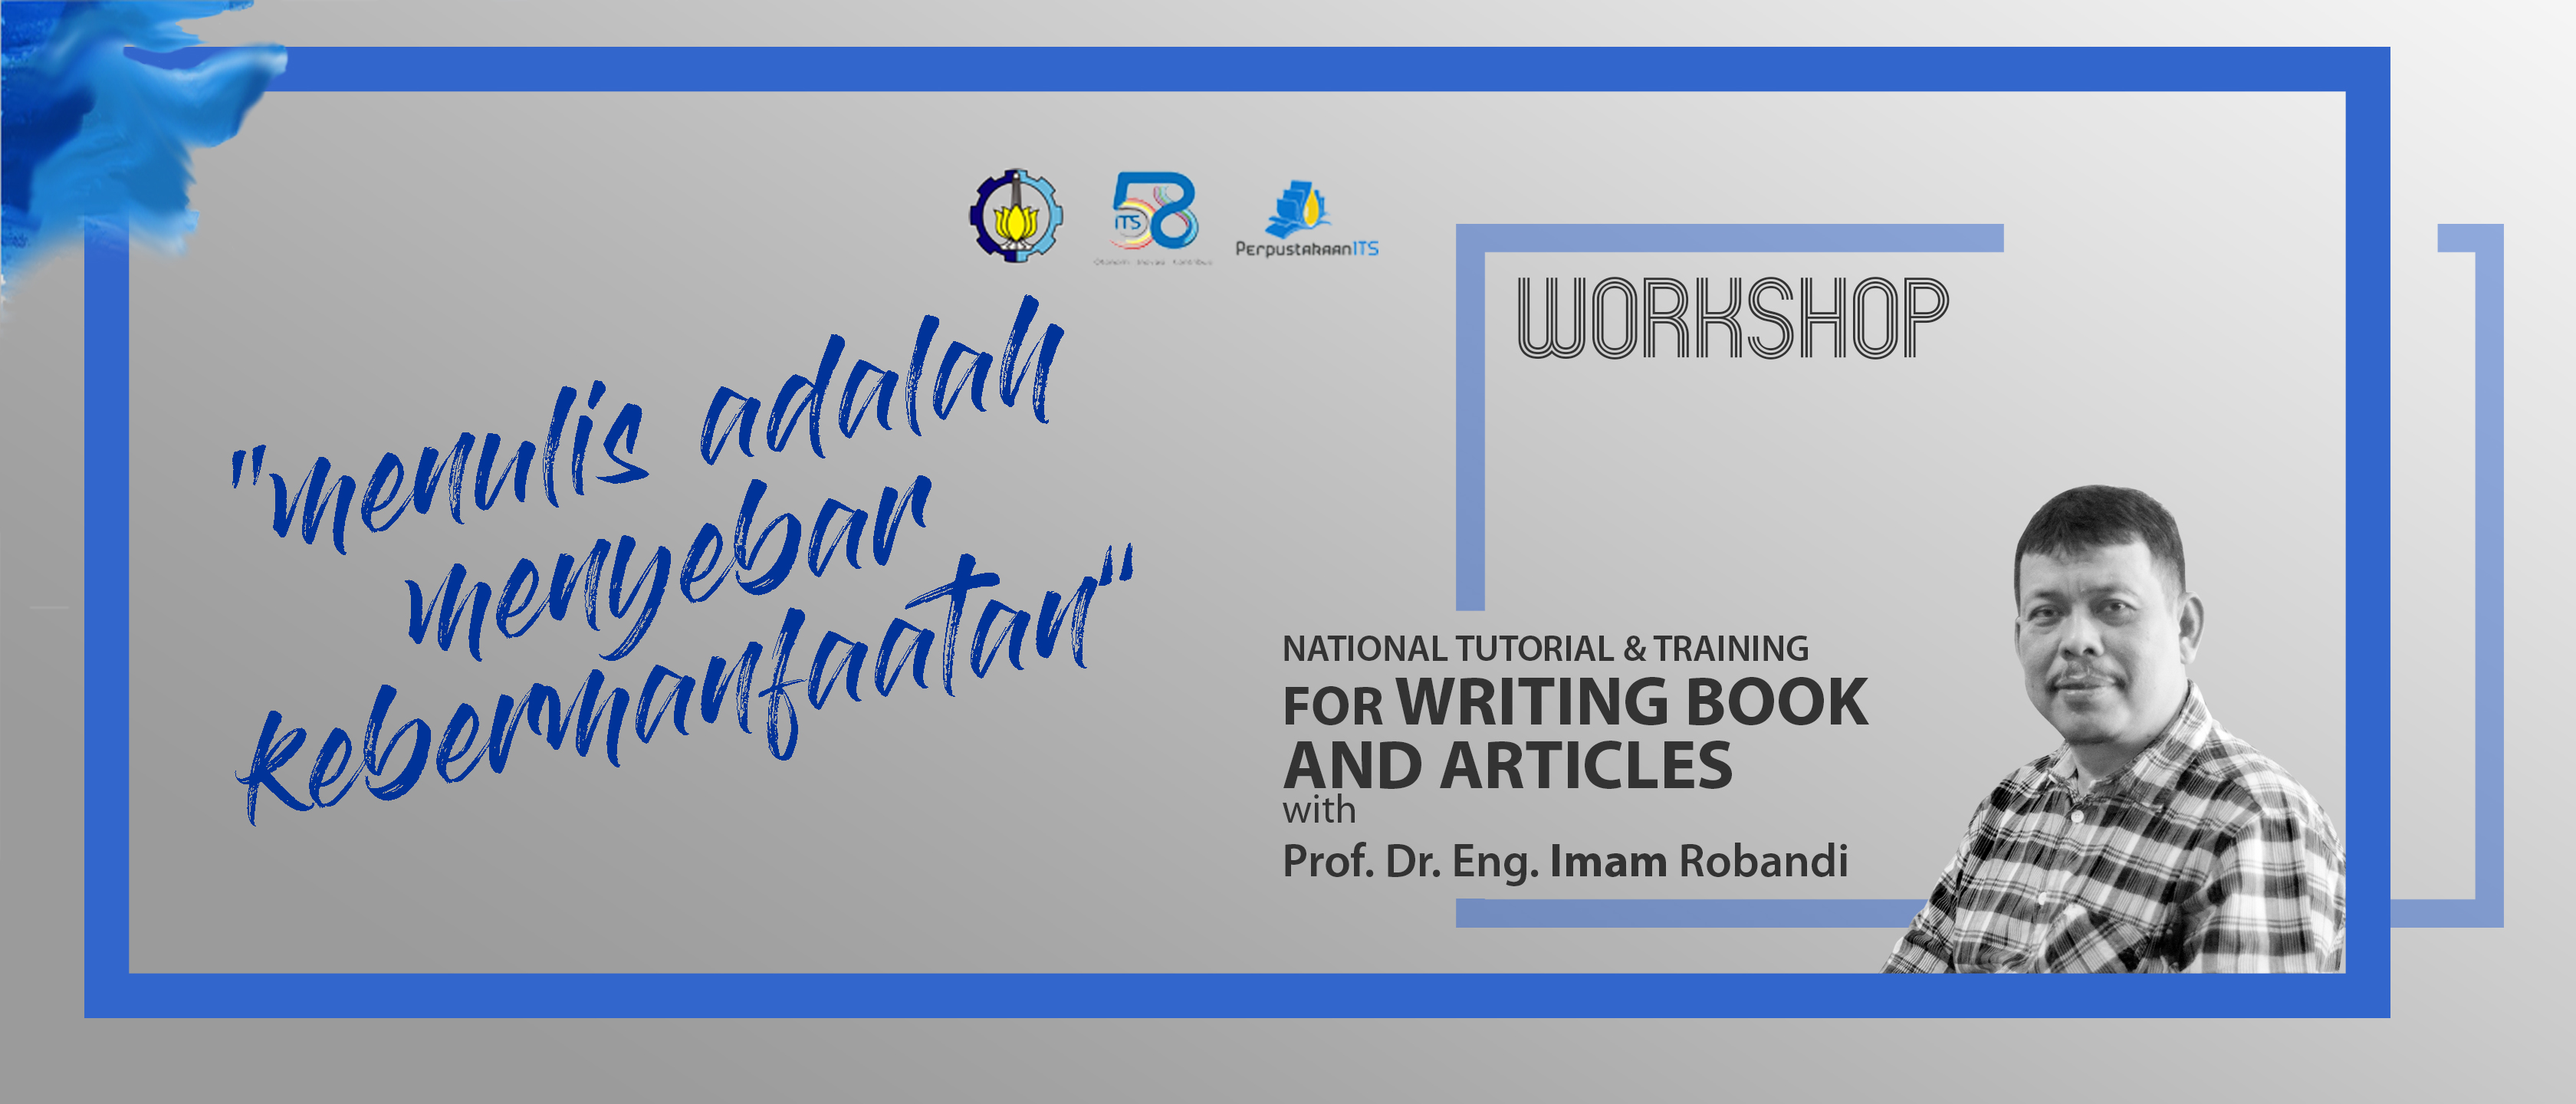 National Tutorial and Training: For Writing Book & Articles